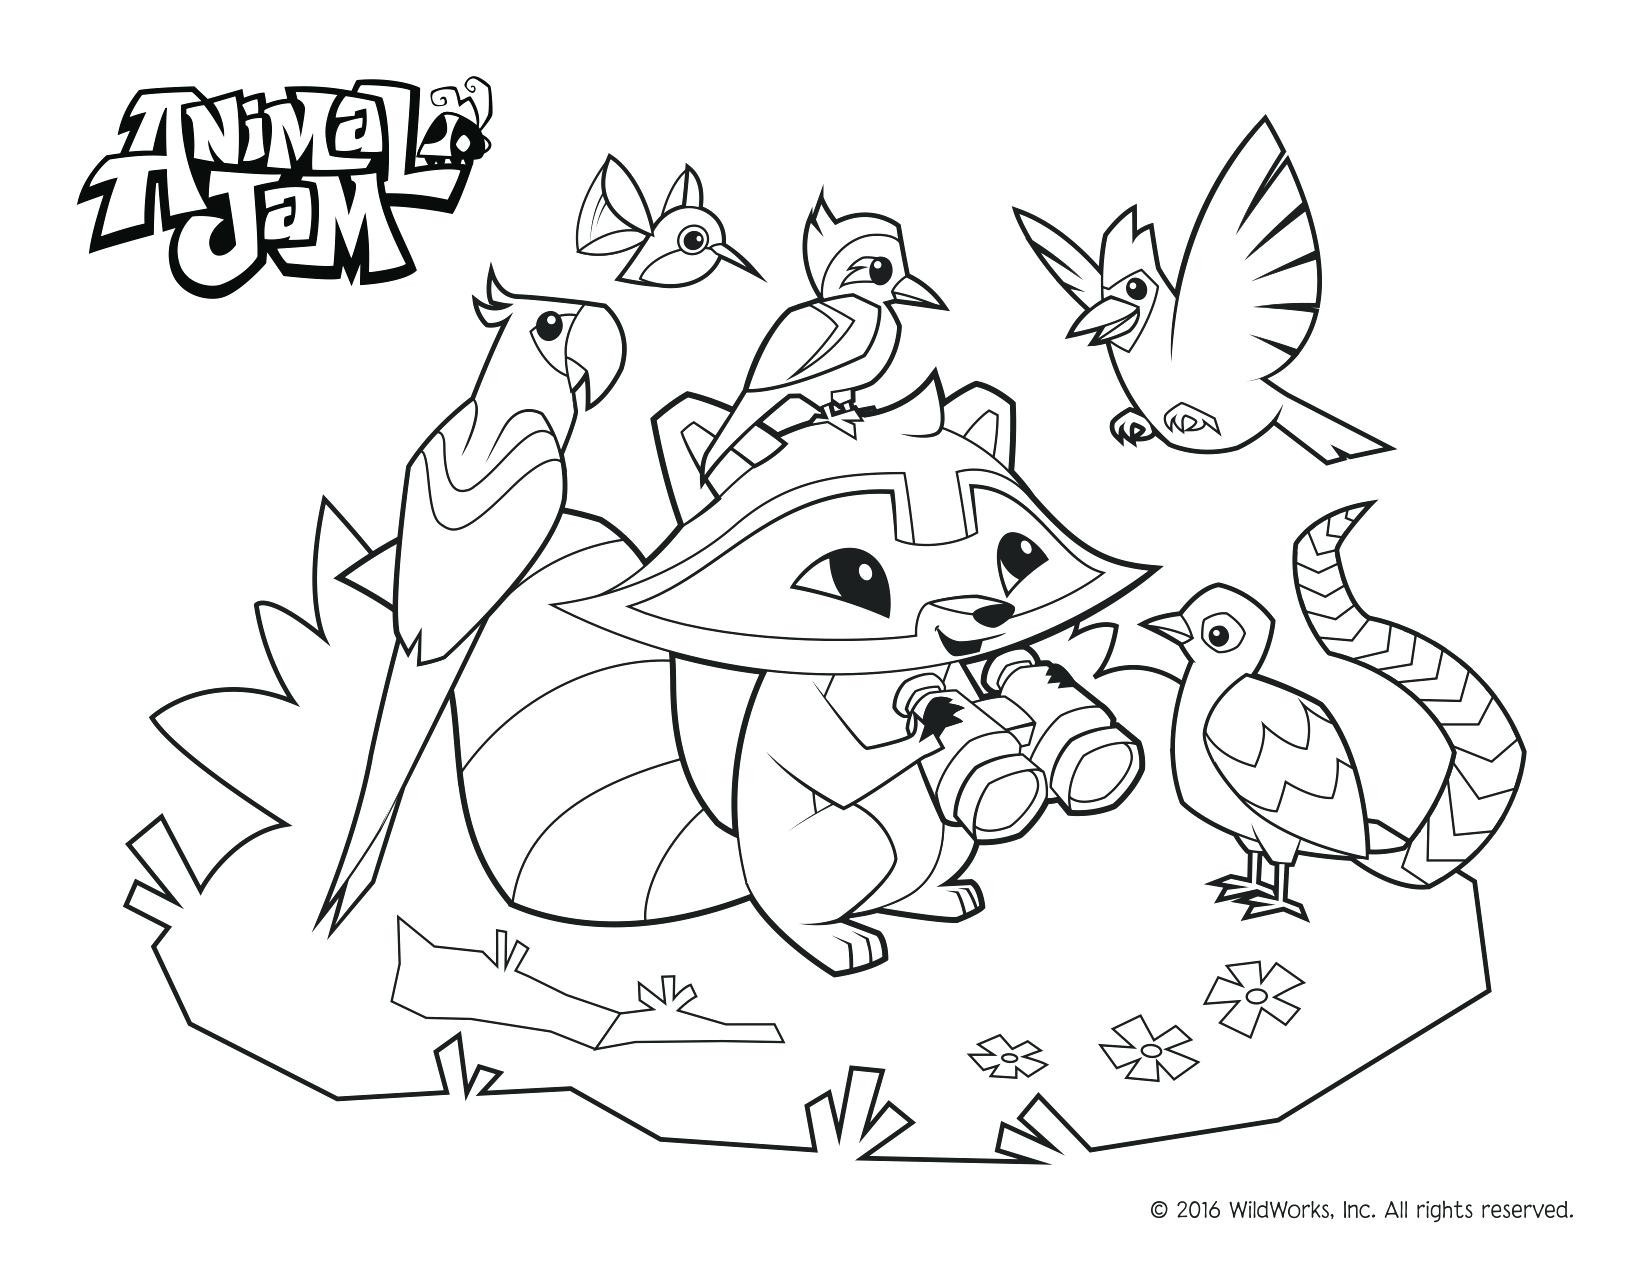 Outer Space Coloring Pages Outer Space Coloring Pages Luxury Animals That You Can Print Here